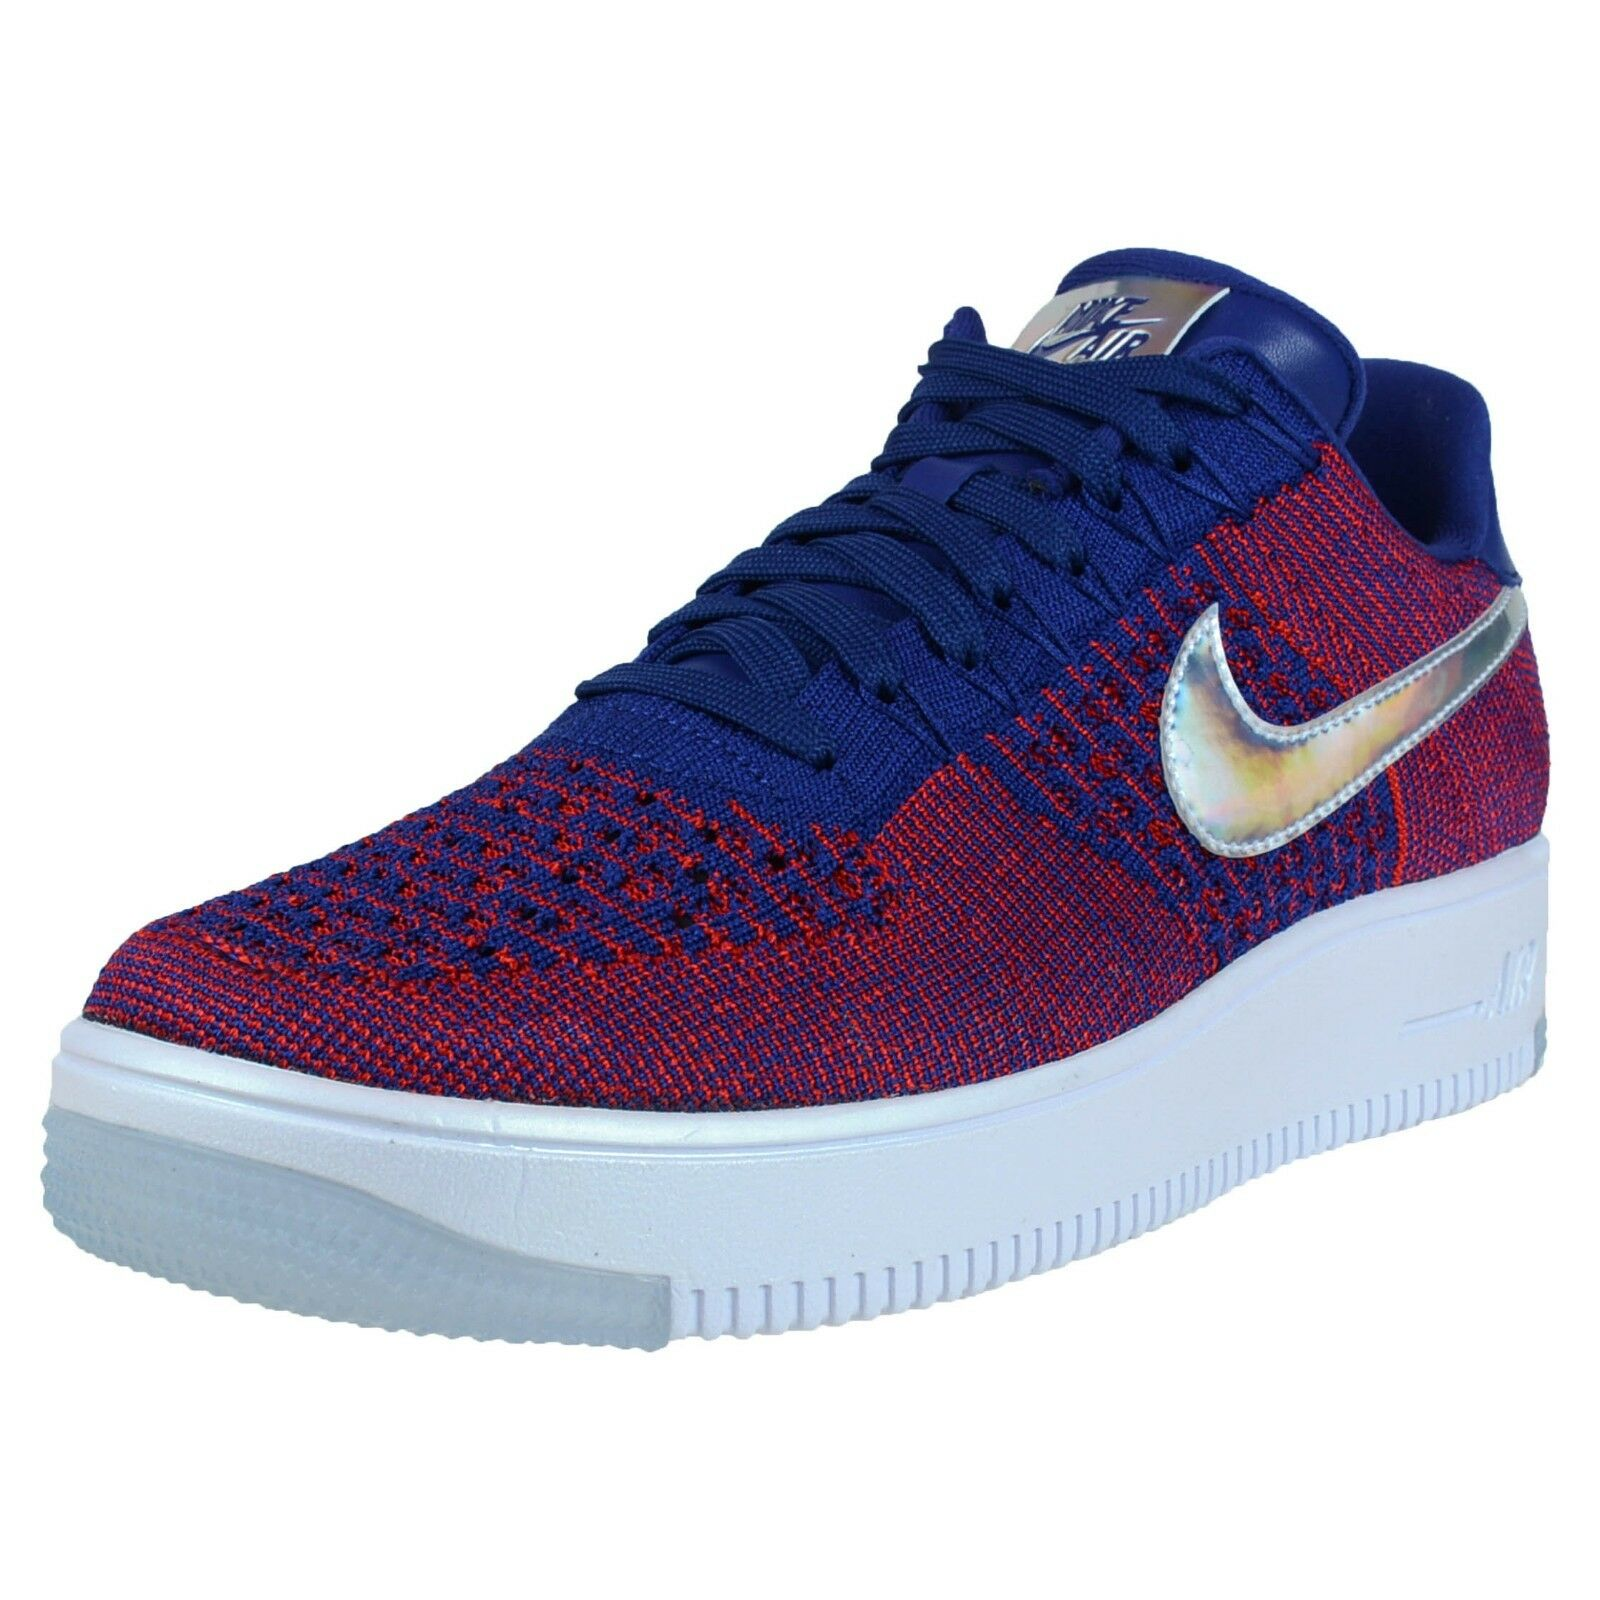 NIKE AIR FORCE 1 ULTRA FLYKNIT LOW PRM GYM RED DEEP ROYAL BLUE WHITE 826577 601